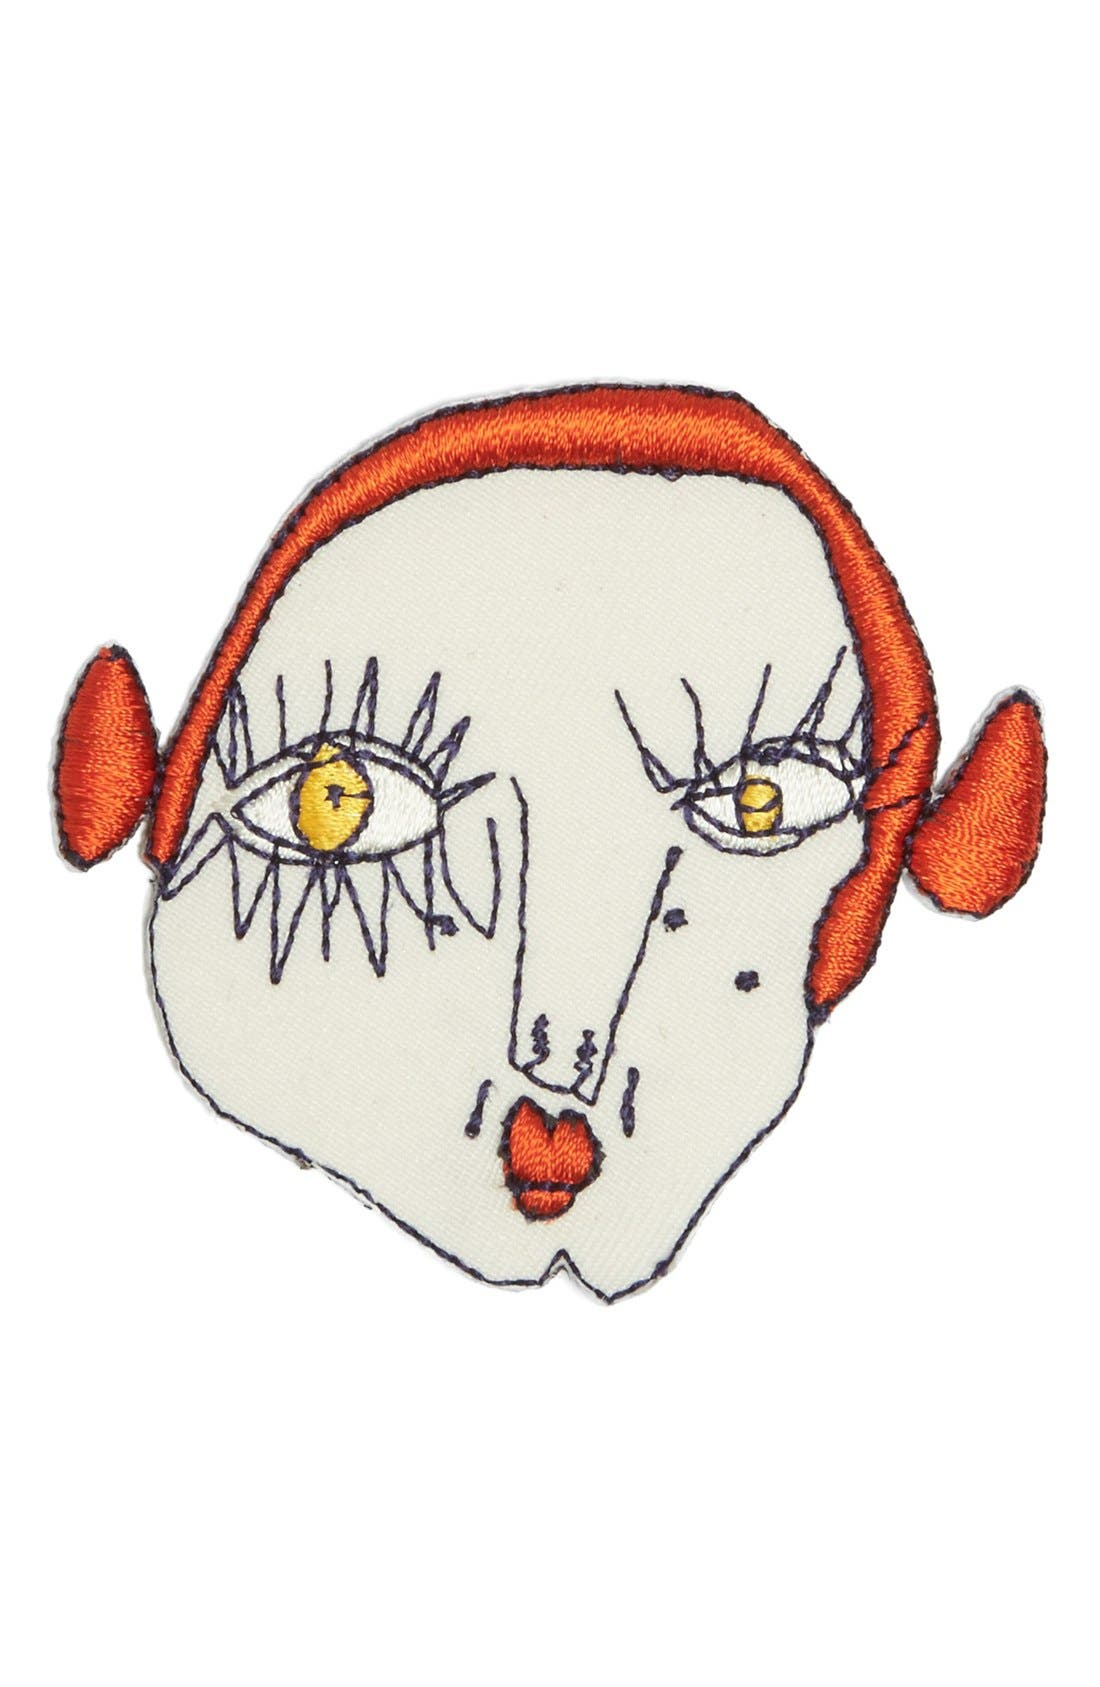 Main Image - Shrimps TBD Embroidered Fashion Accessory Patch